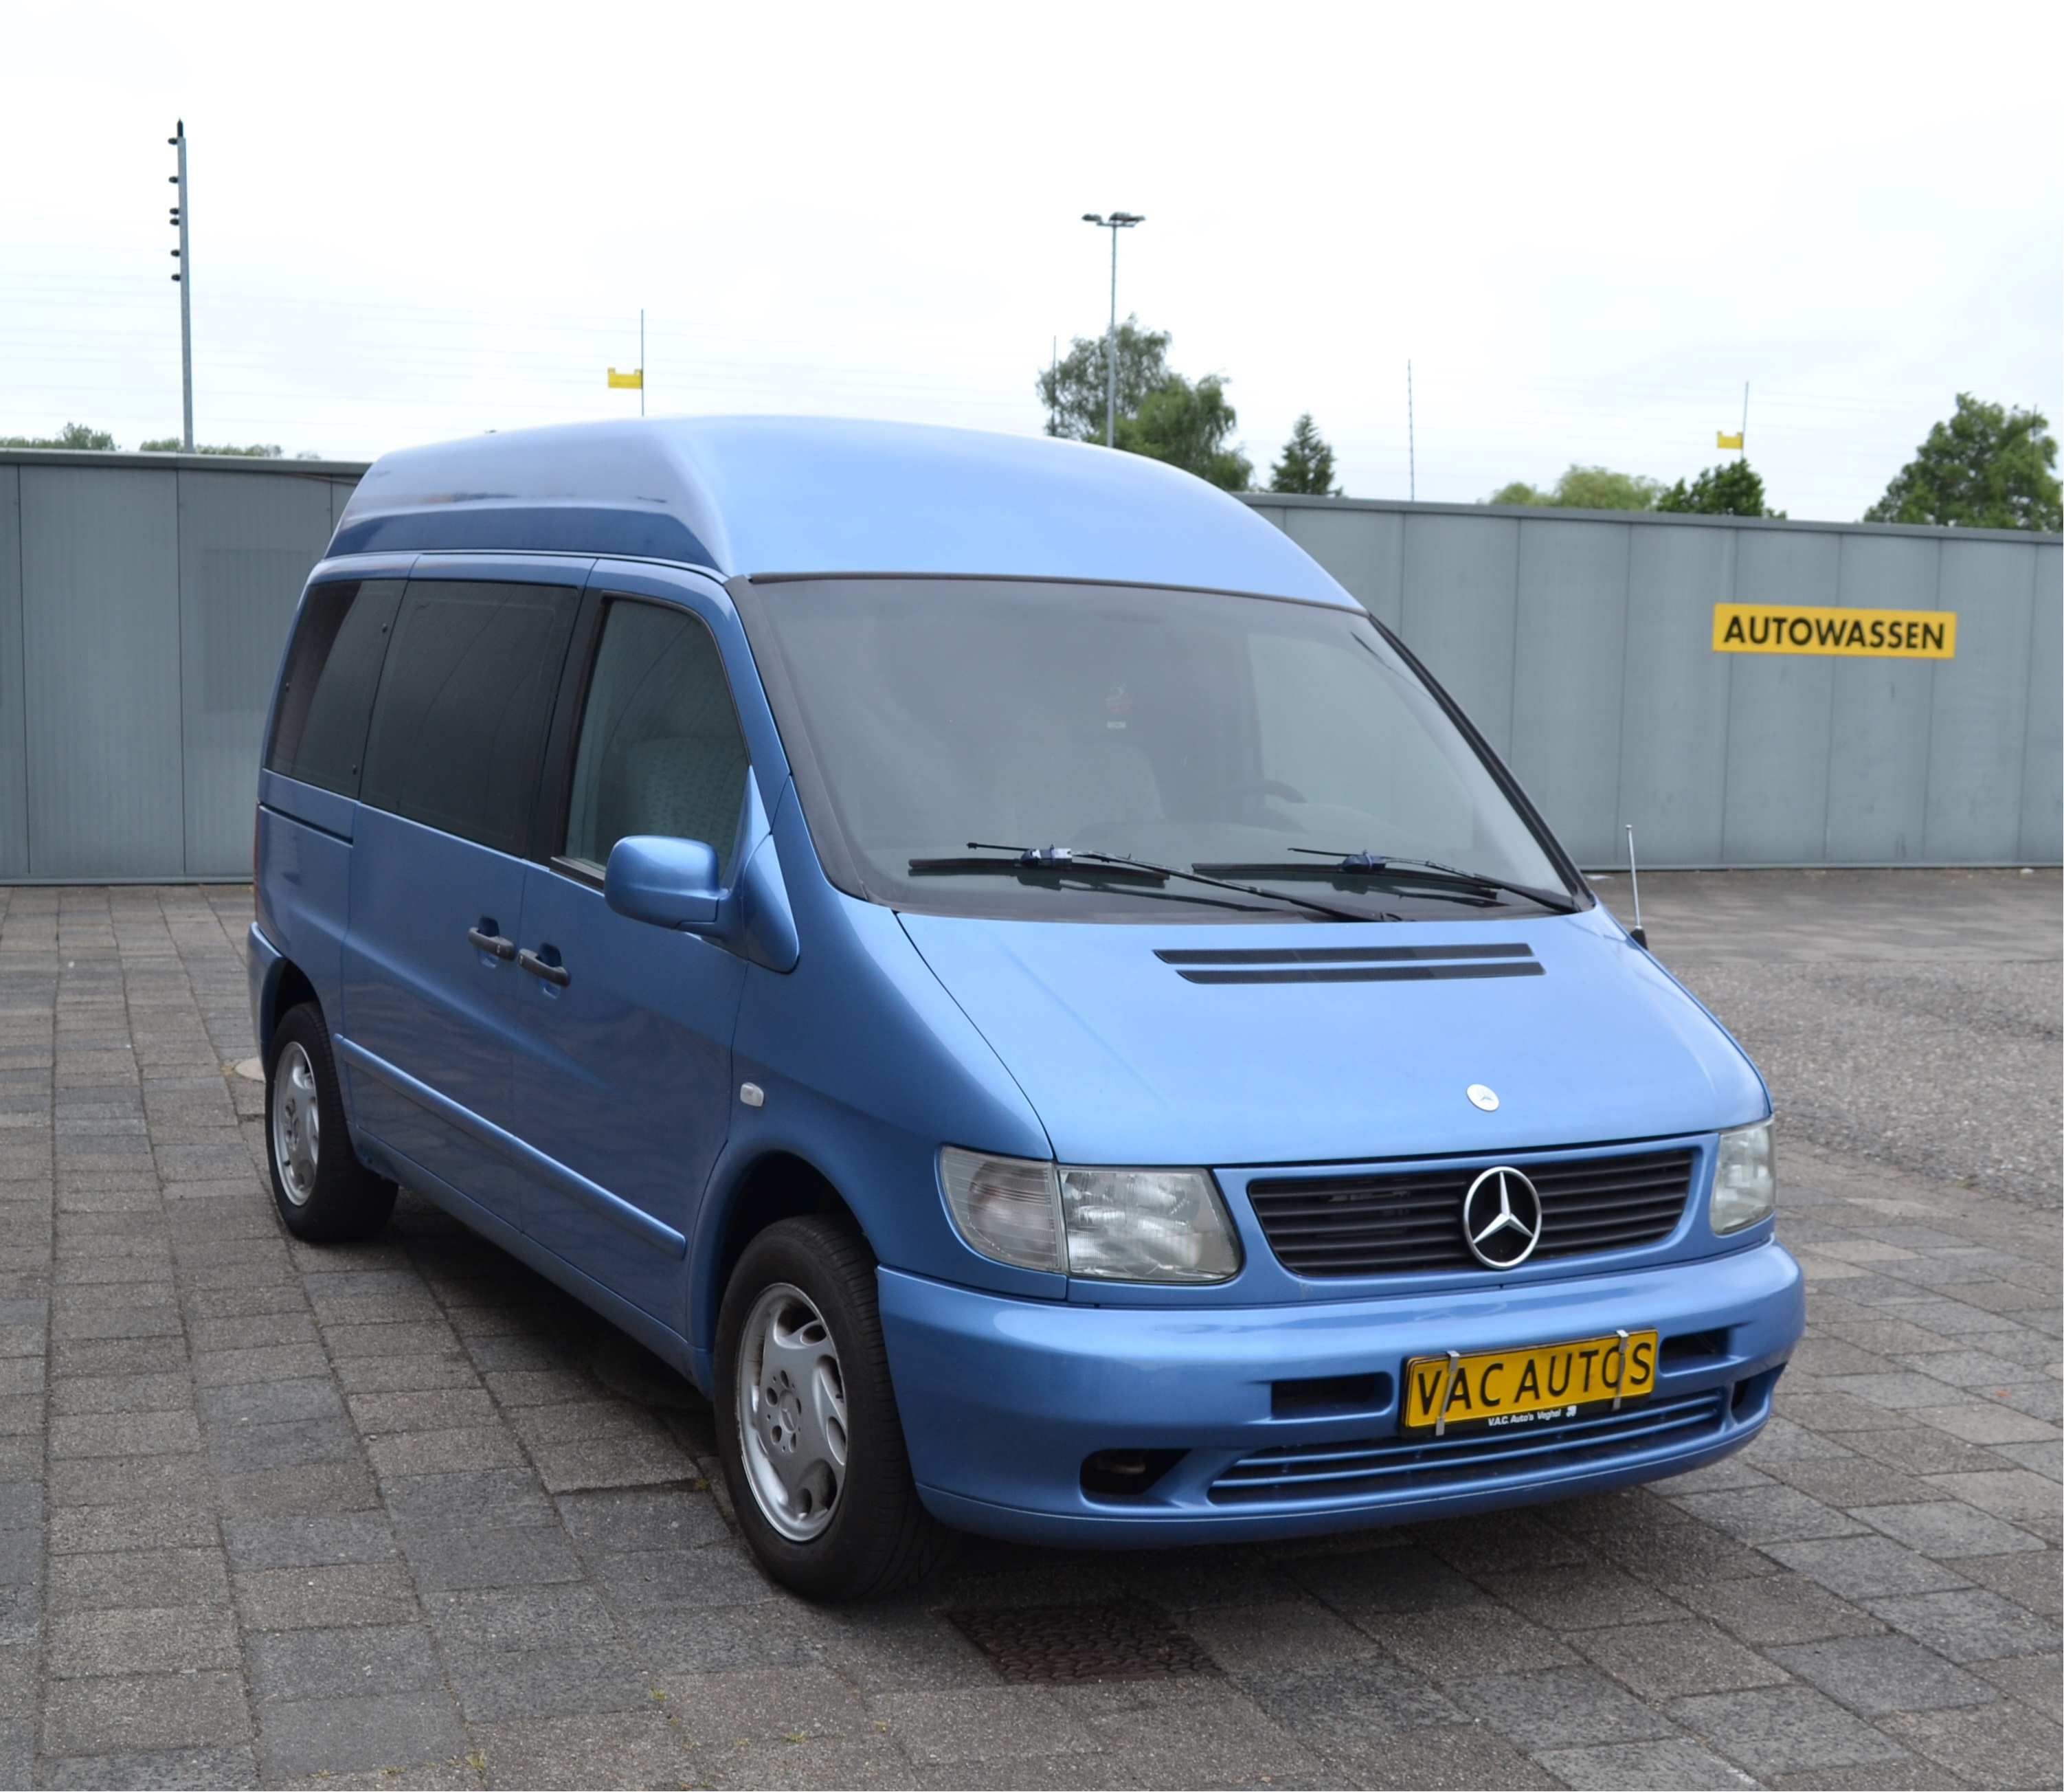 mercedes vito v230 camper automaat nieuwe interieur vac. Black Bedroom Furniture Sets. Home Design Ideas